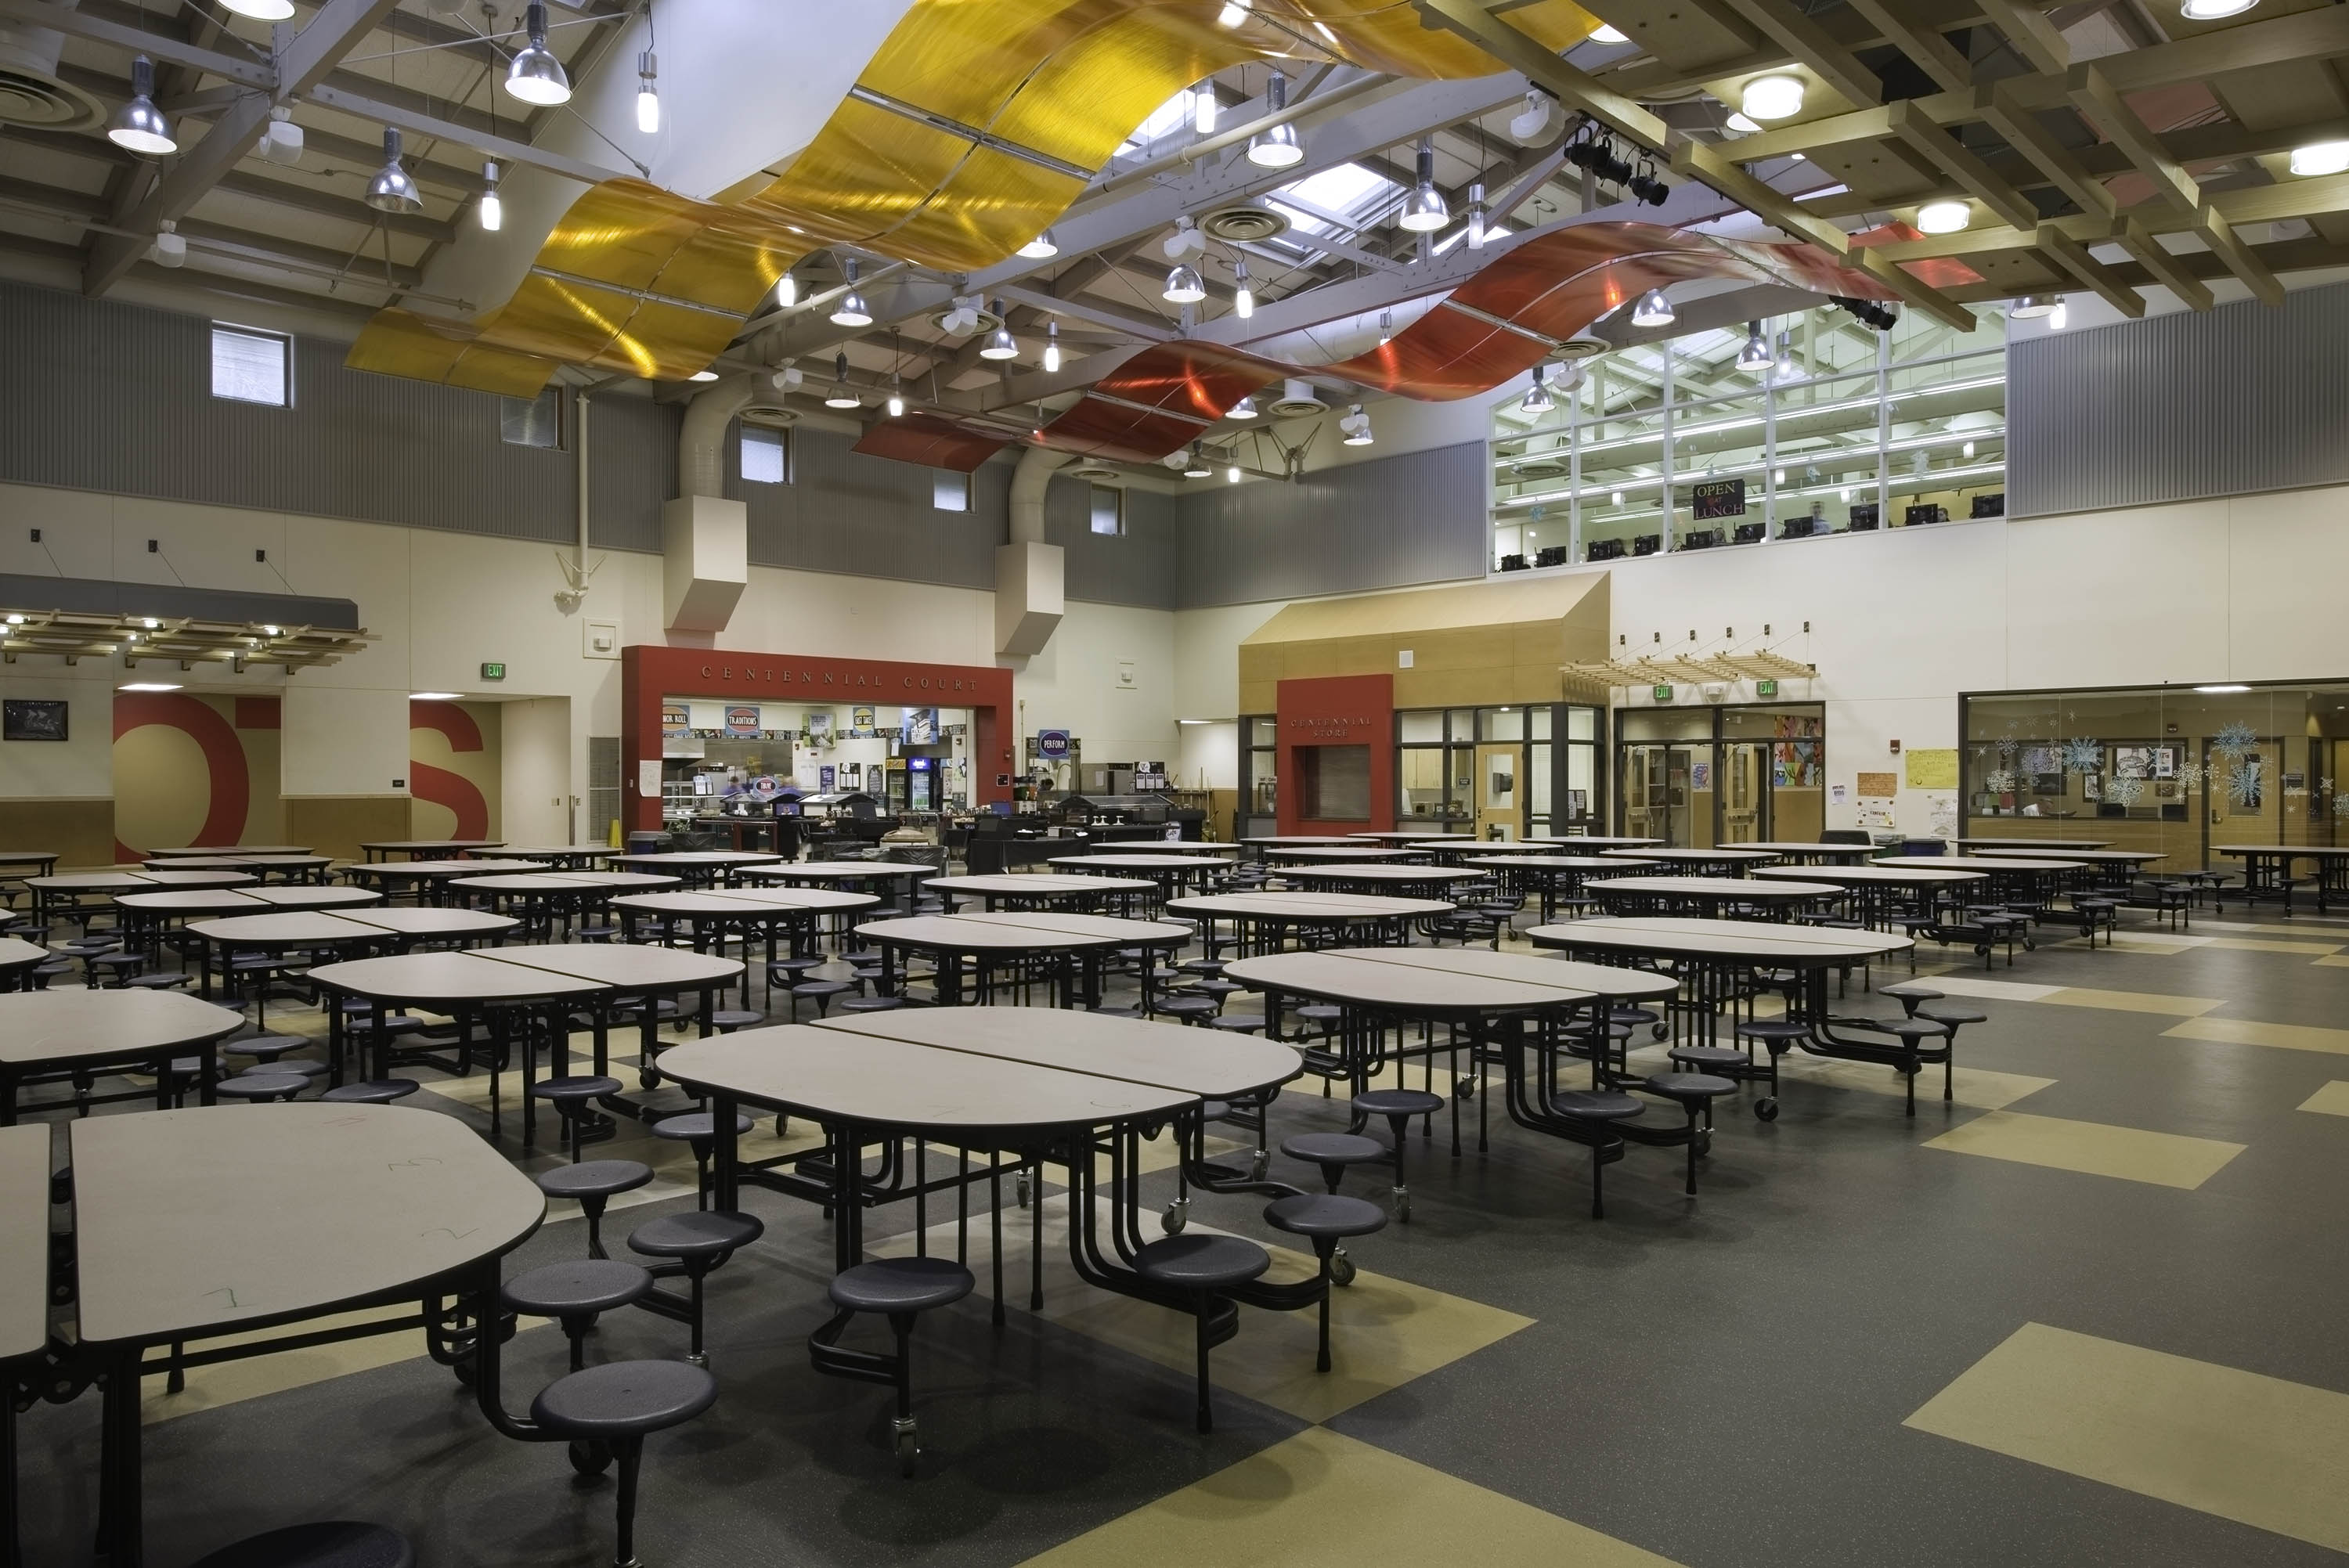 Wide photo of the lunchroom.